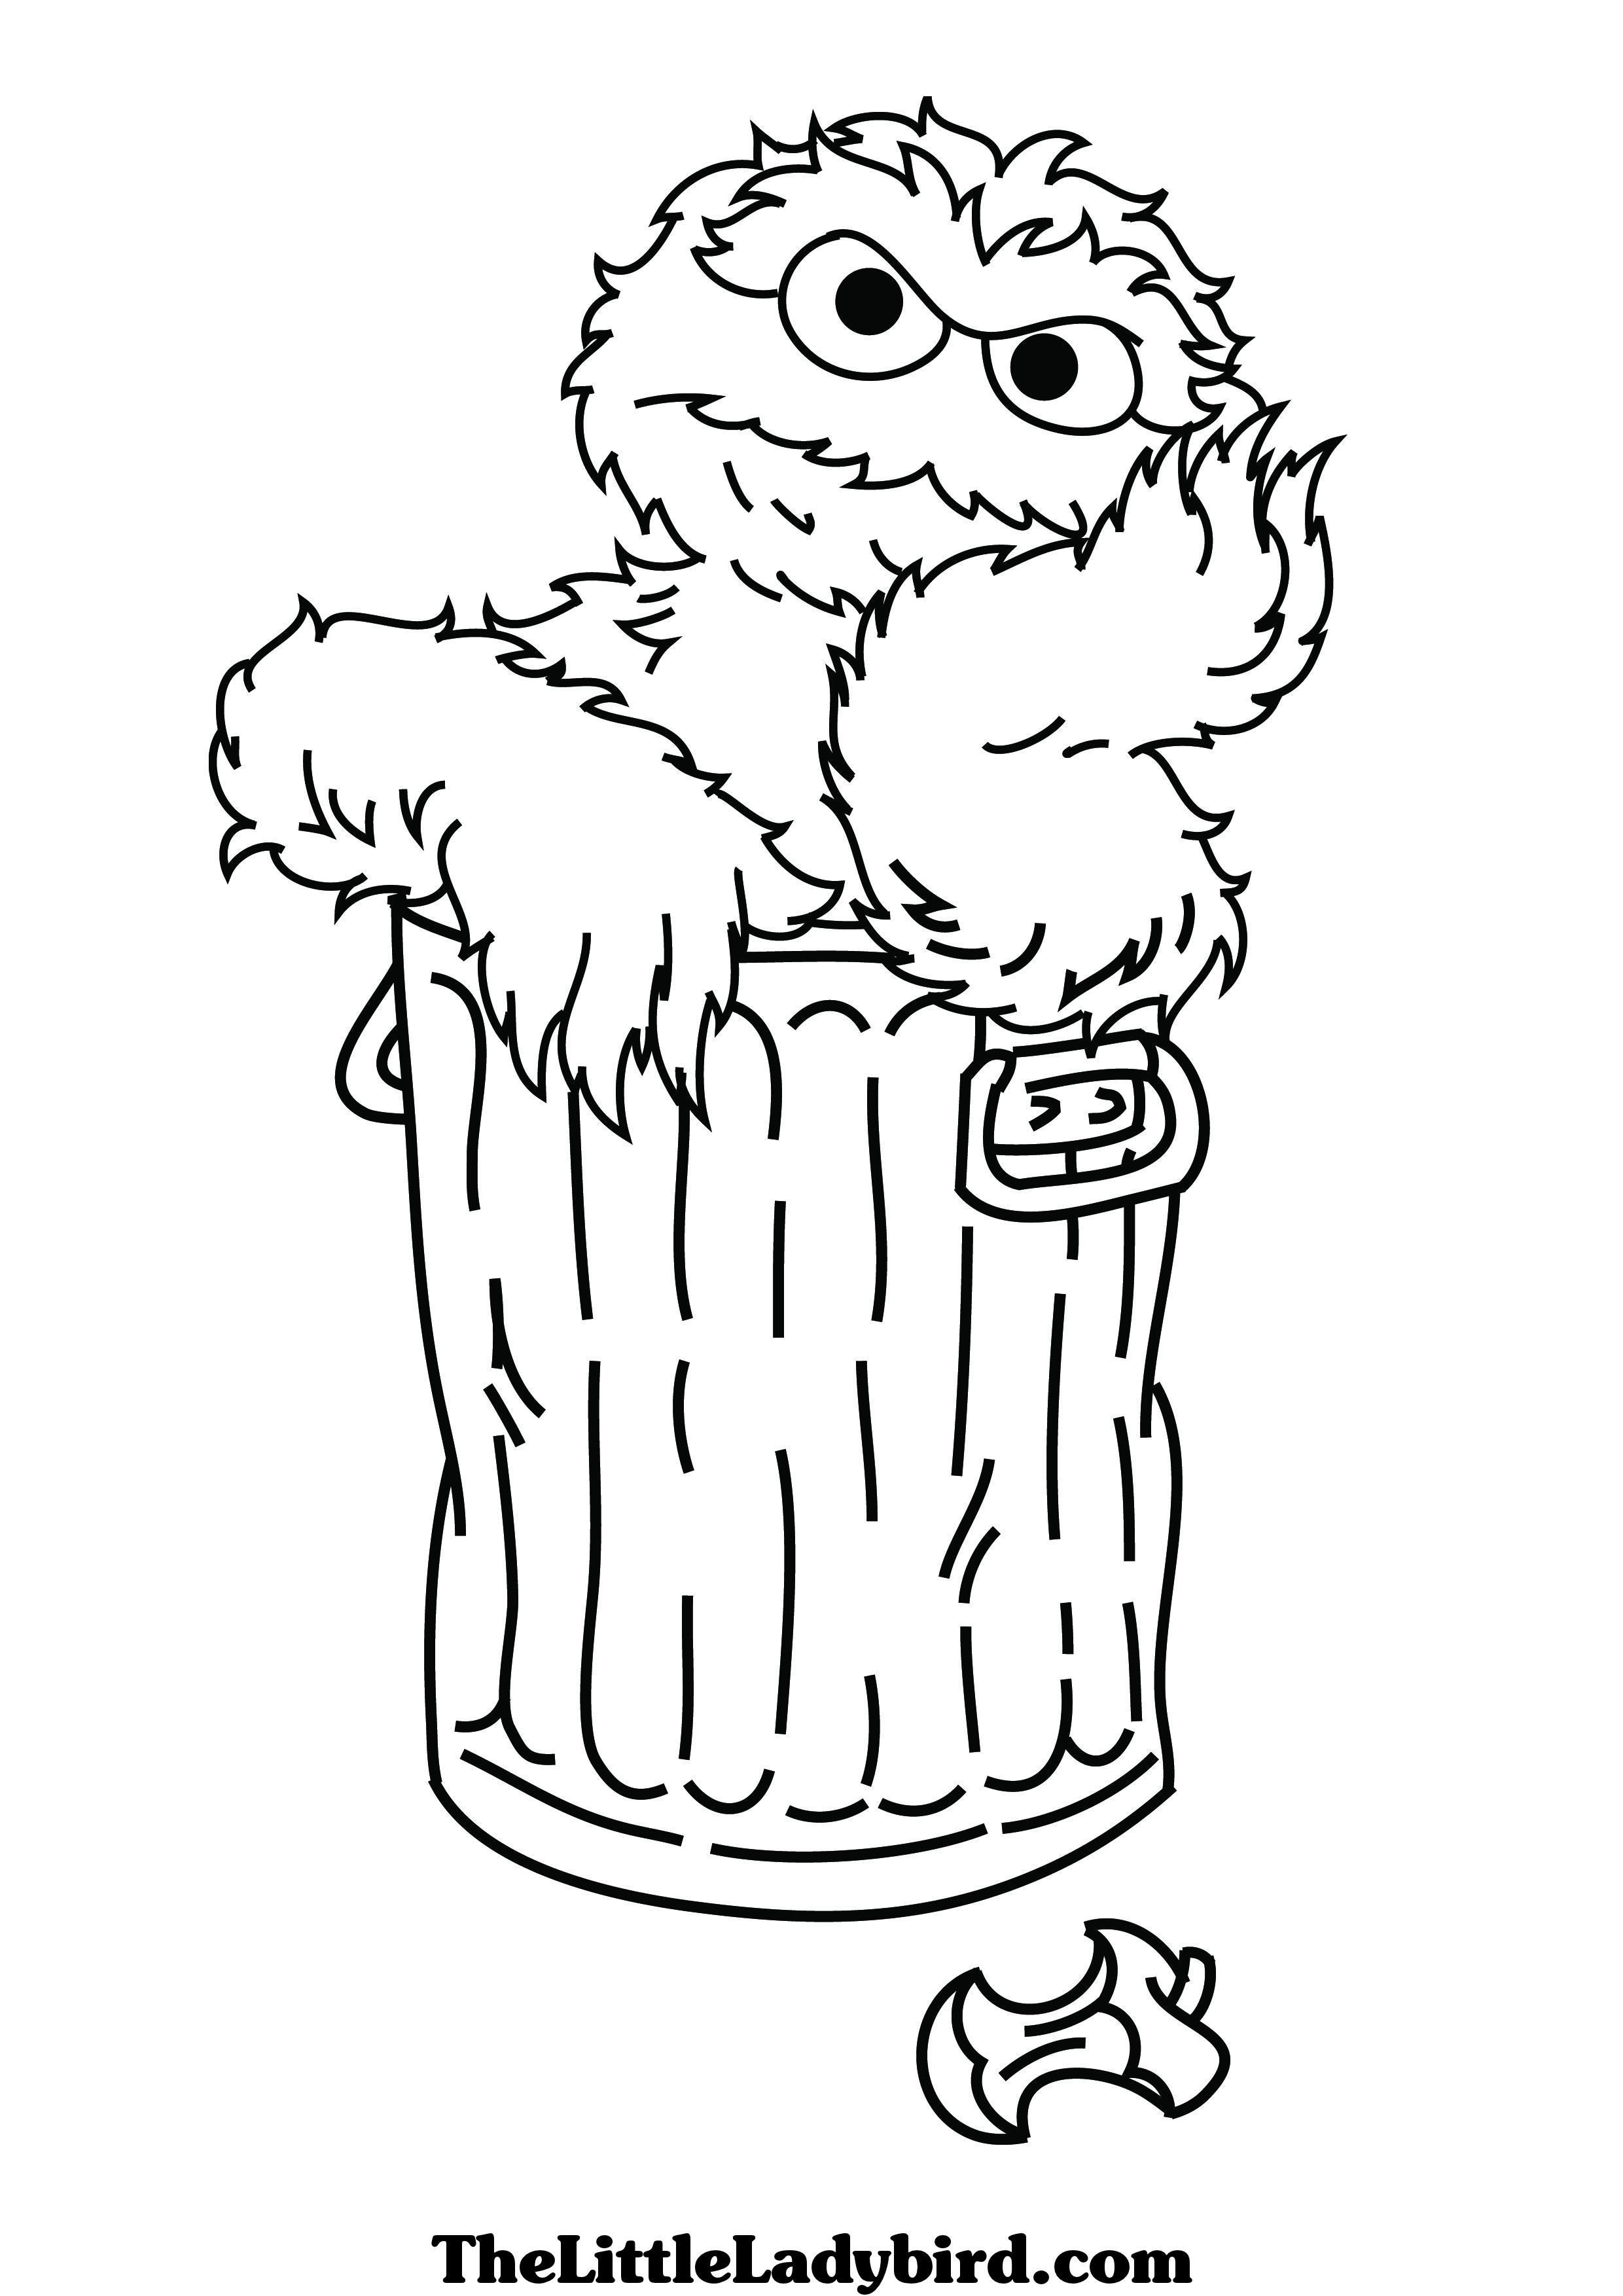 Sesame Street Sign Coloring Page Free Sesame Street Oscar Coloring Page Thelittleladybird